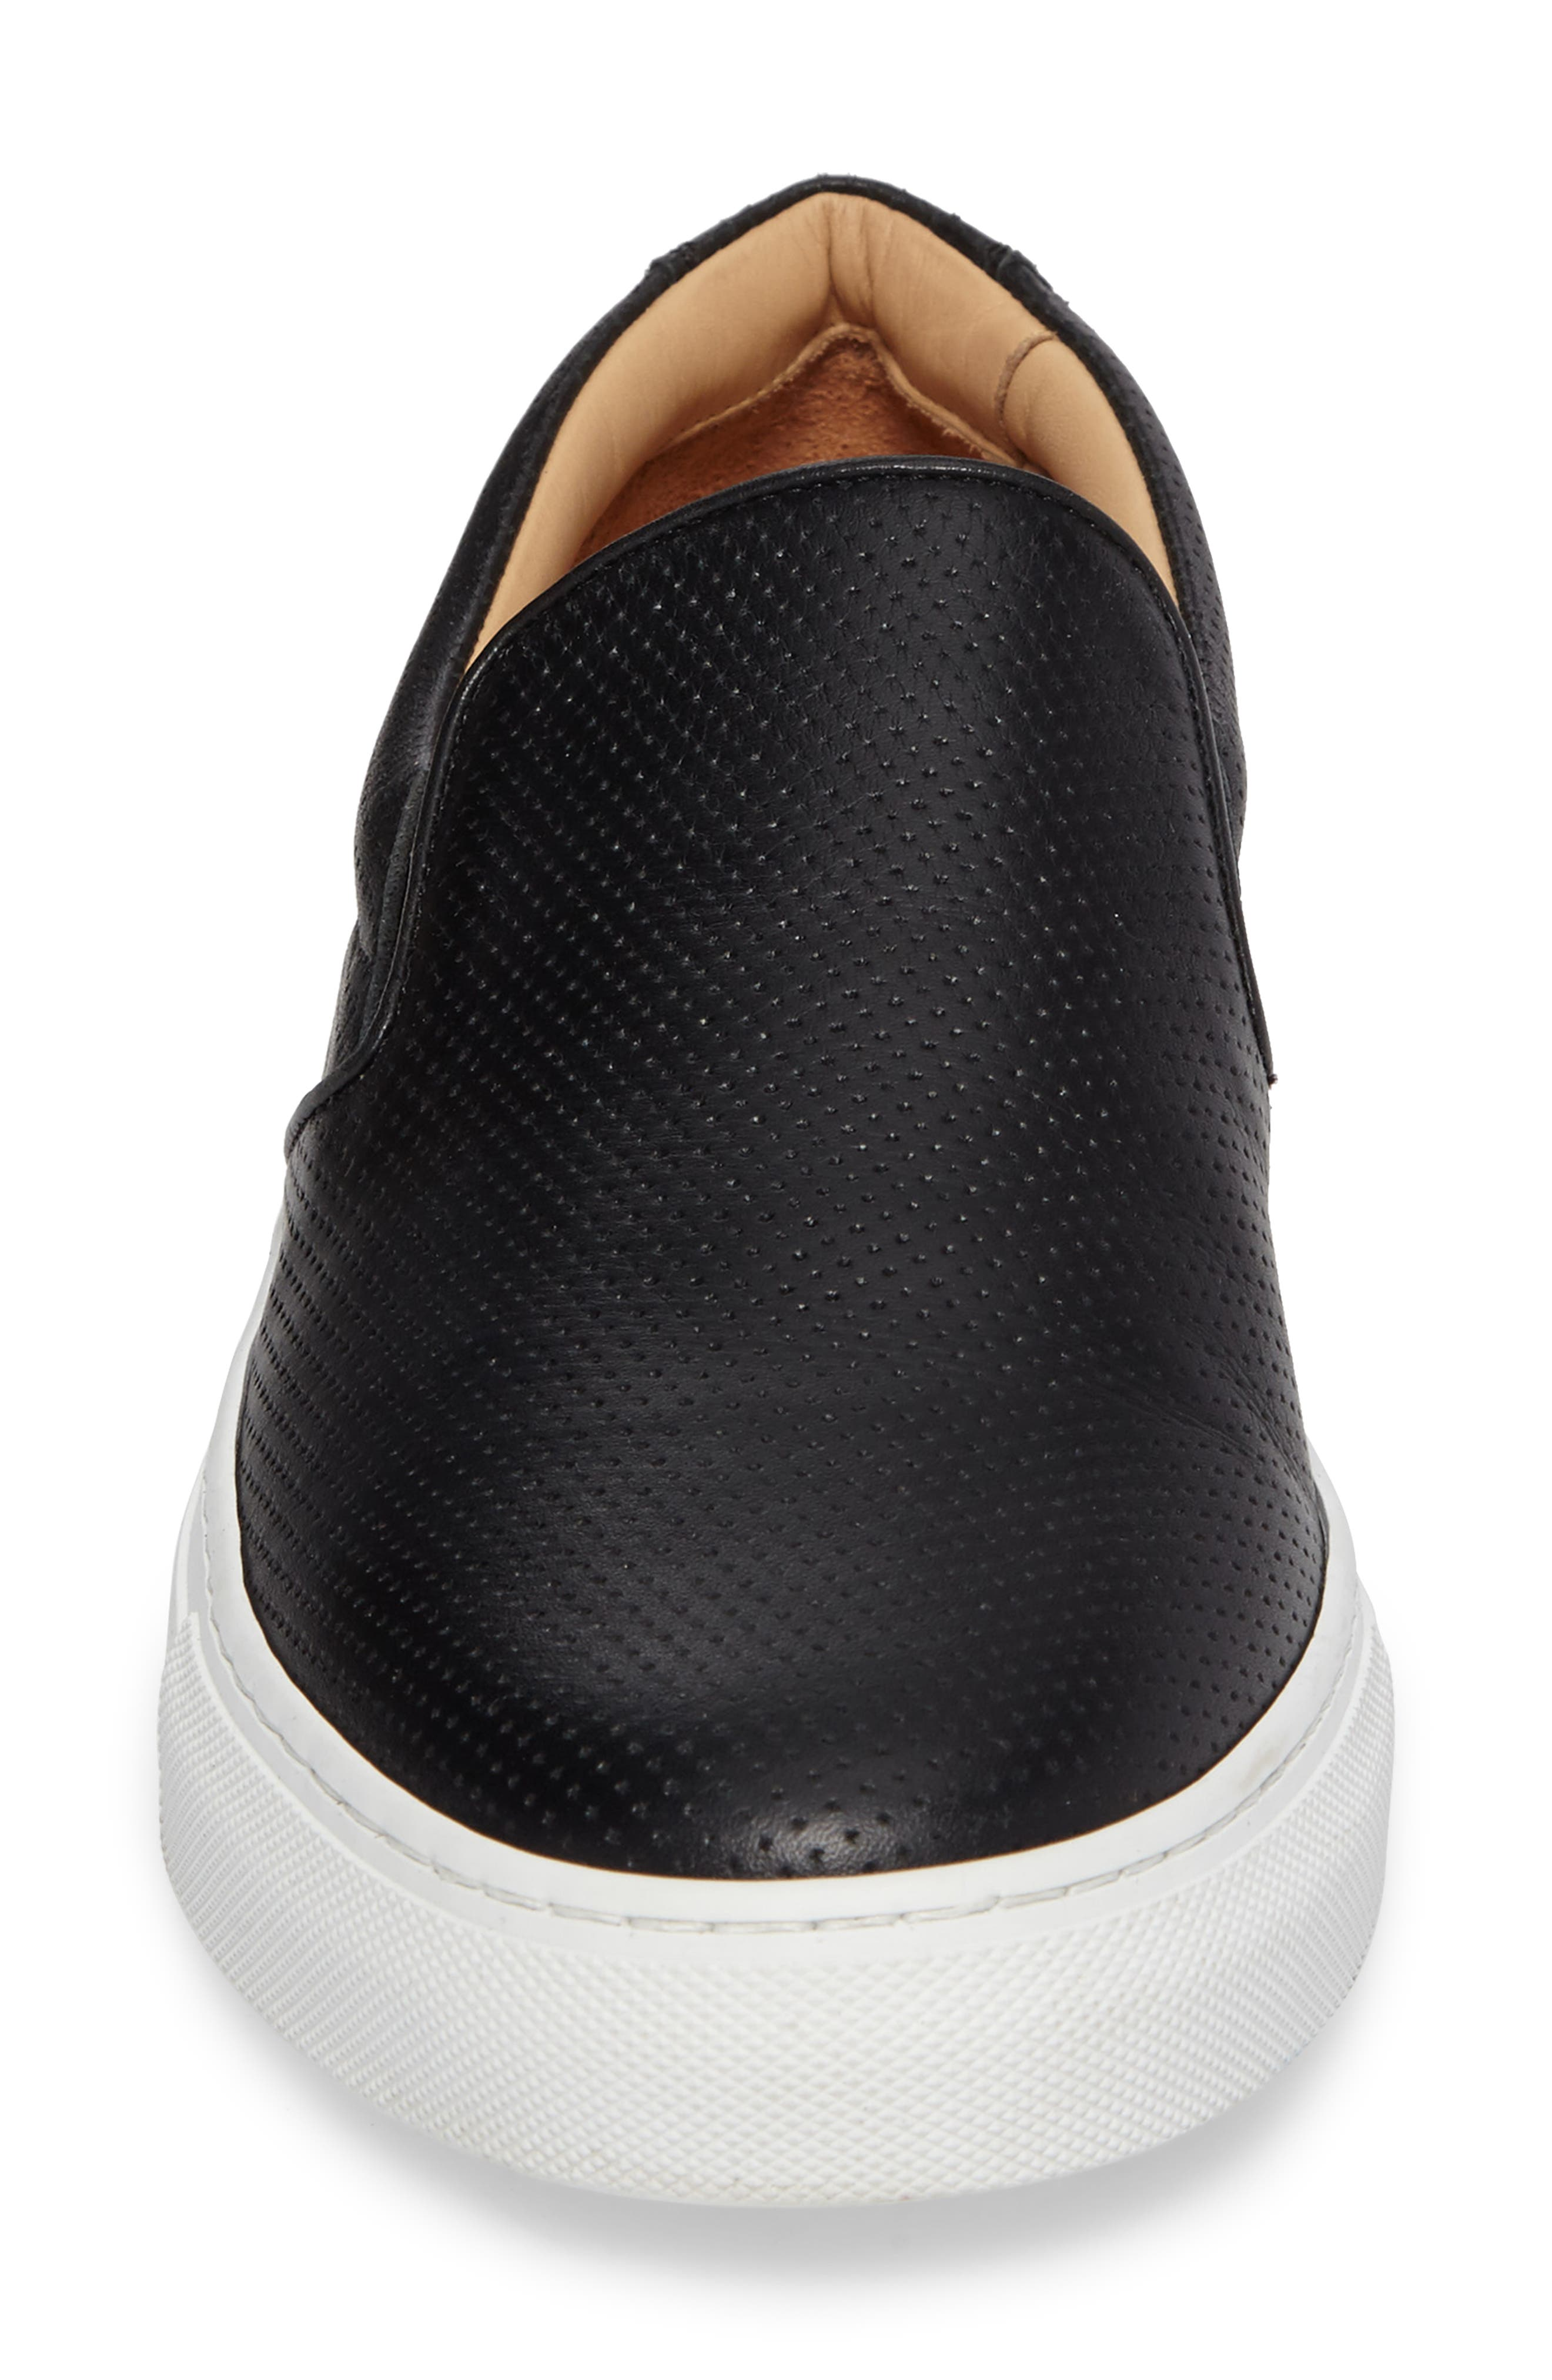 Wooster Slip-On Sneaker,                             Alternate thumbnail 4, color,                             BLACK PERFORATED LEATHER